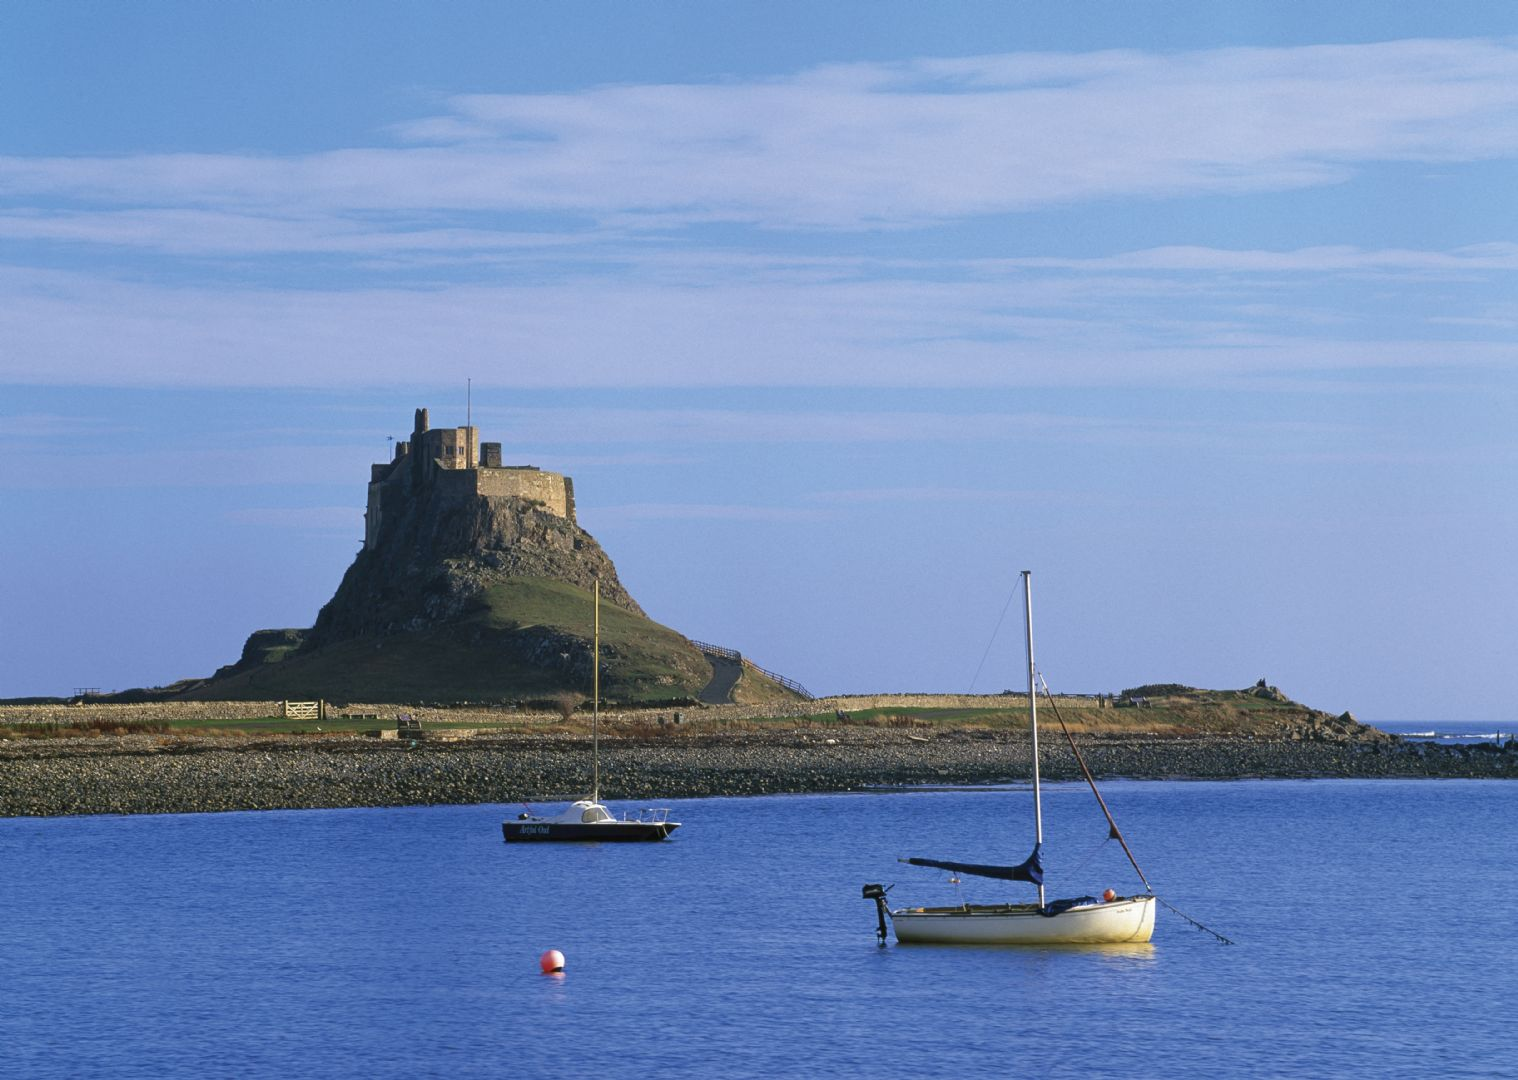 leisure-cycling-holiday-northumberland-lindisfarne-castle.jpg - NEW! UK - Romans, Reivers and Ancient Castles - Leisure Cycling